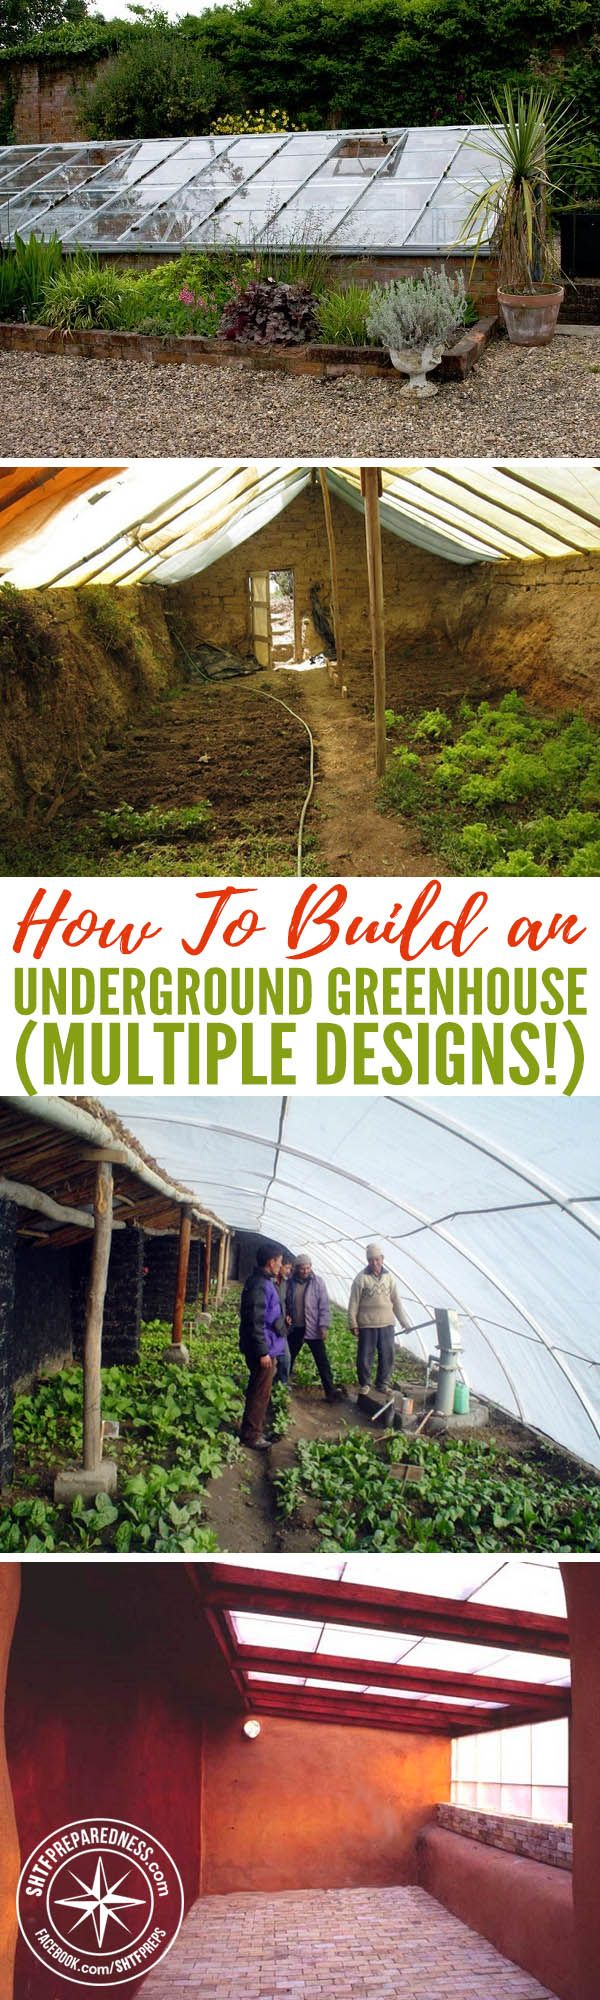 122 best greenhouses images on pinterest green houses